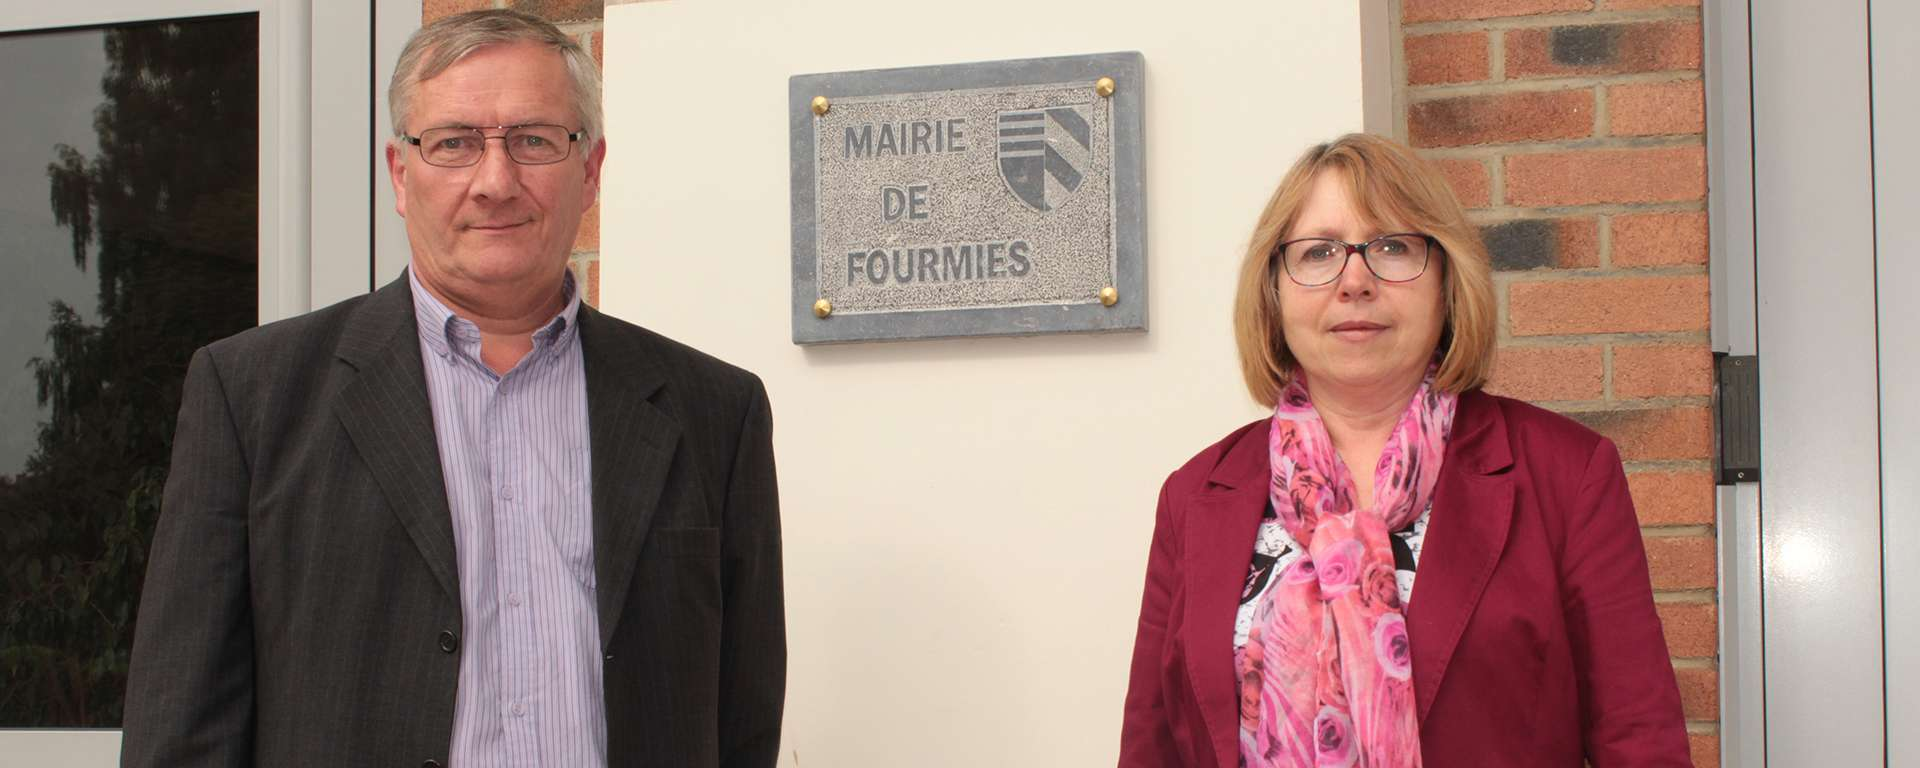 Images site Mairie Fourmies